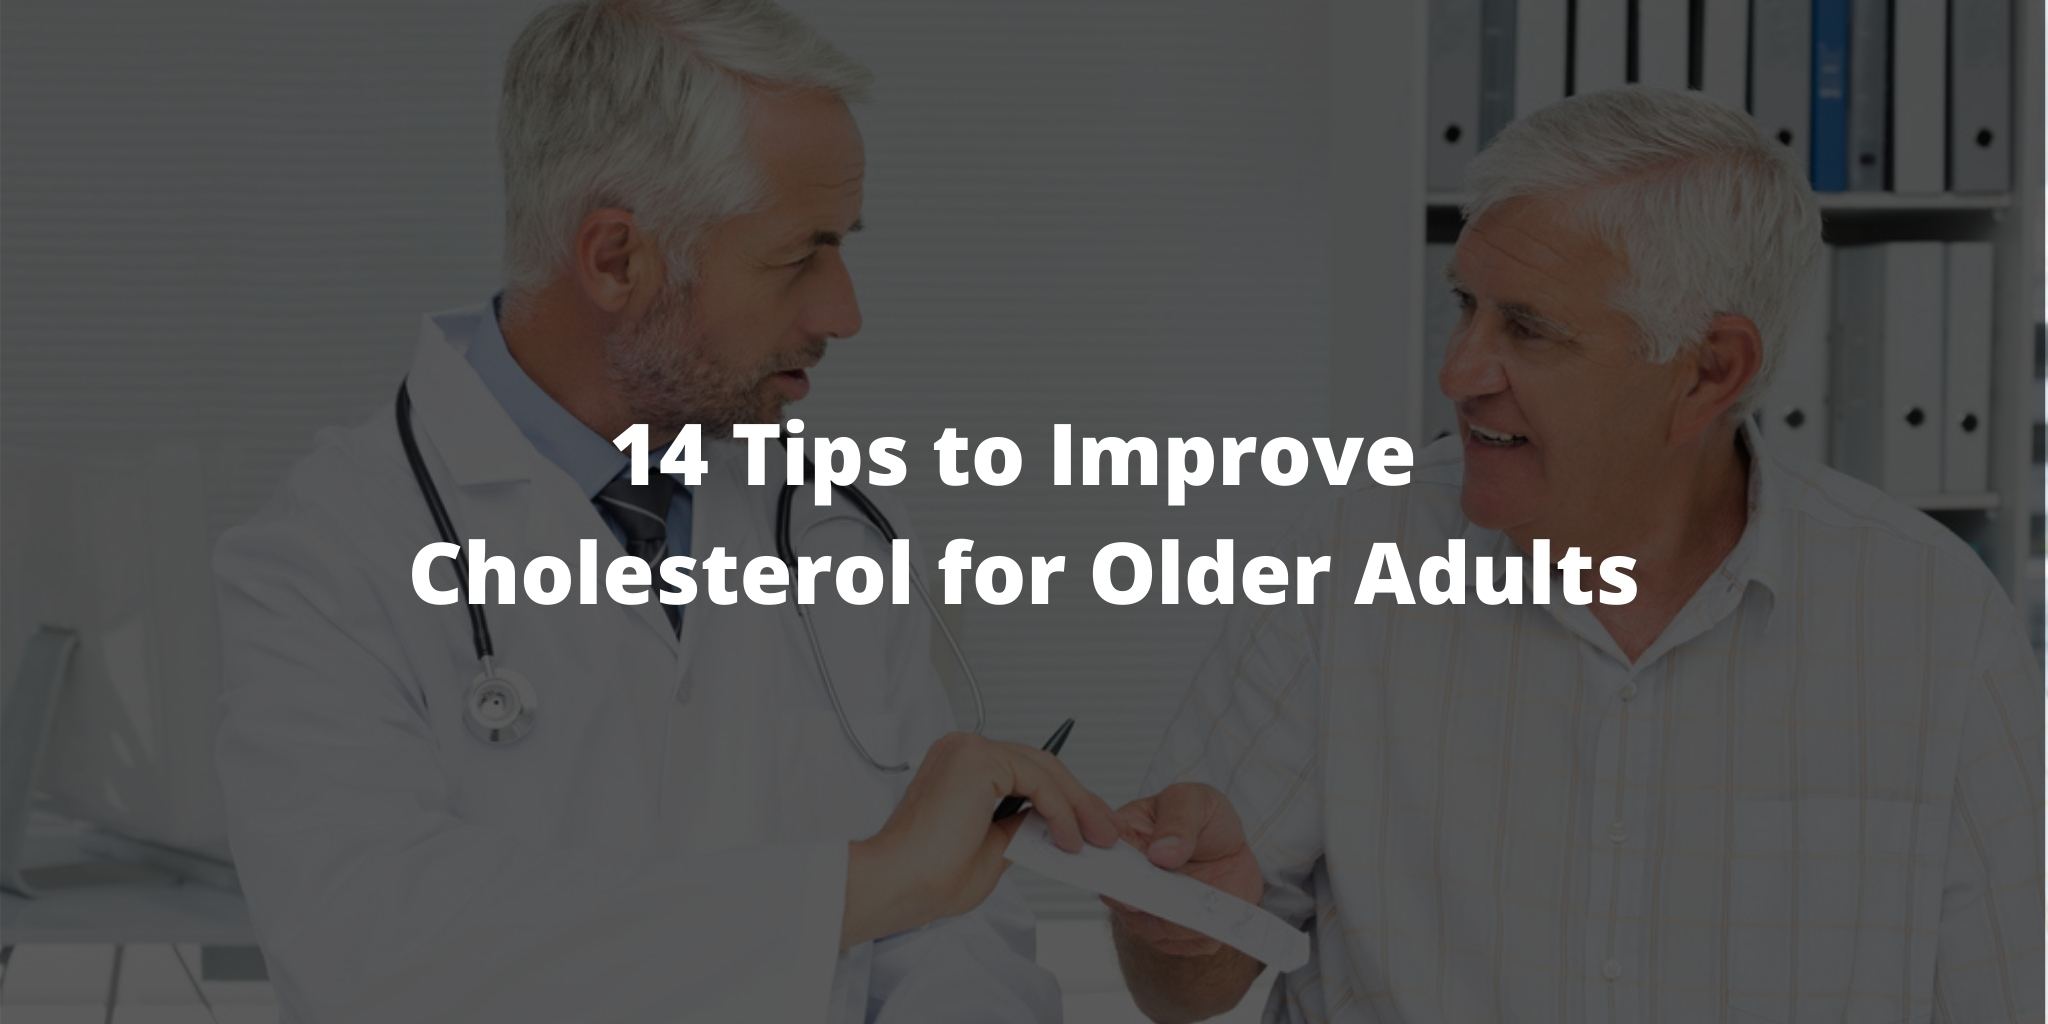 14 Tips to Improve Cholesterol for Older Adults